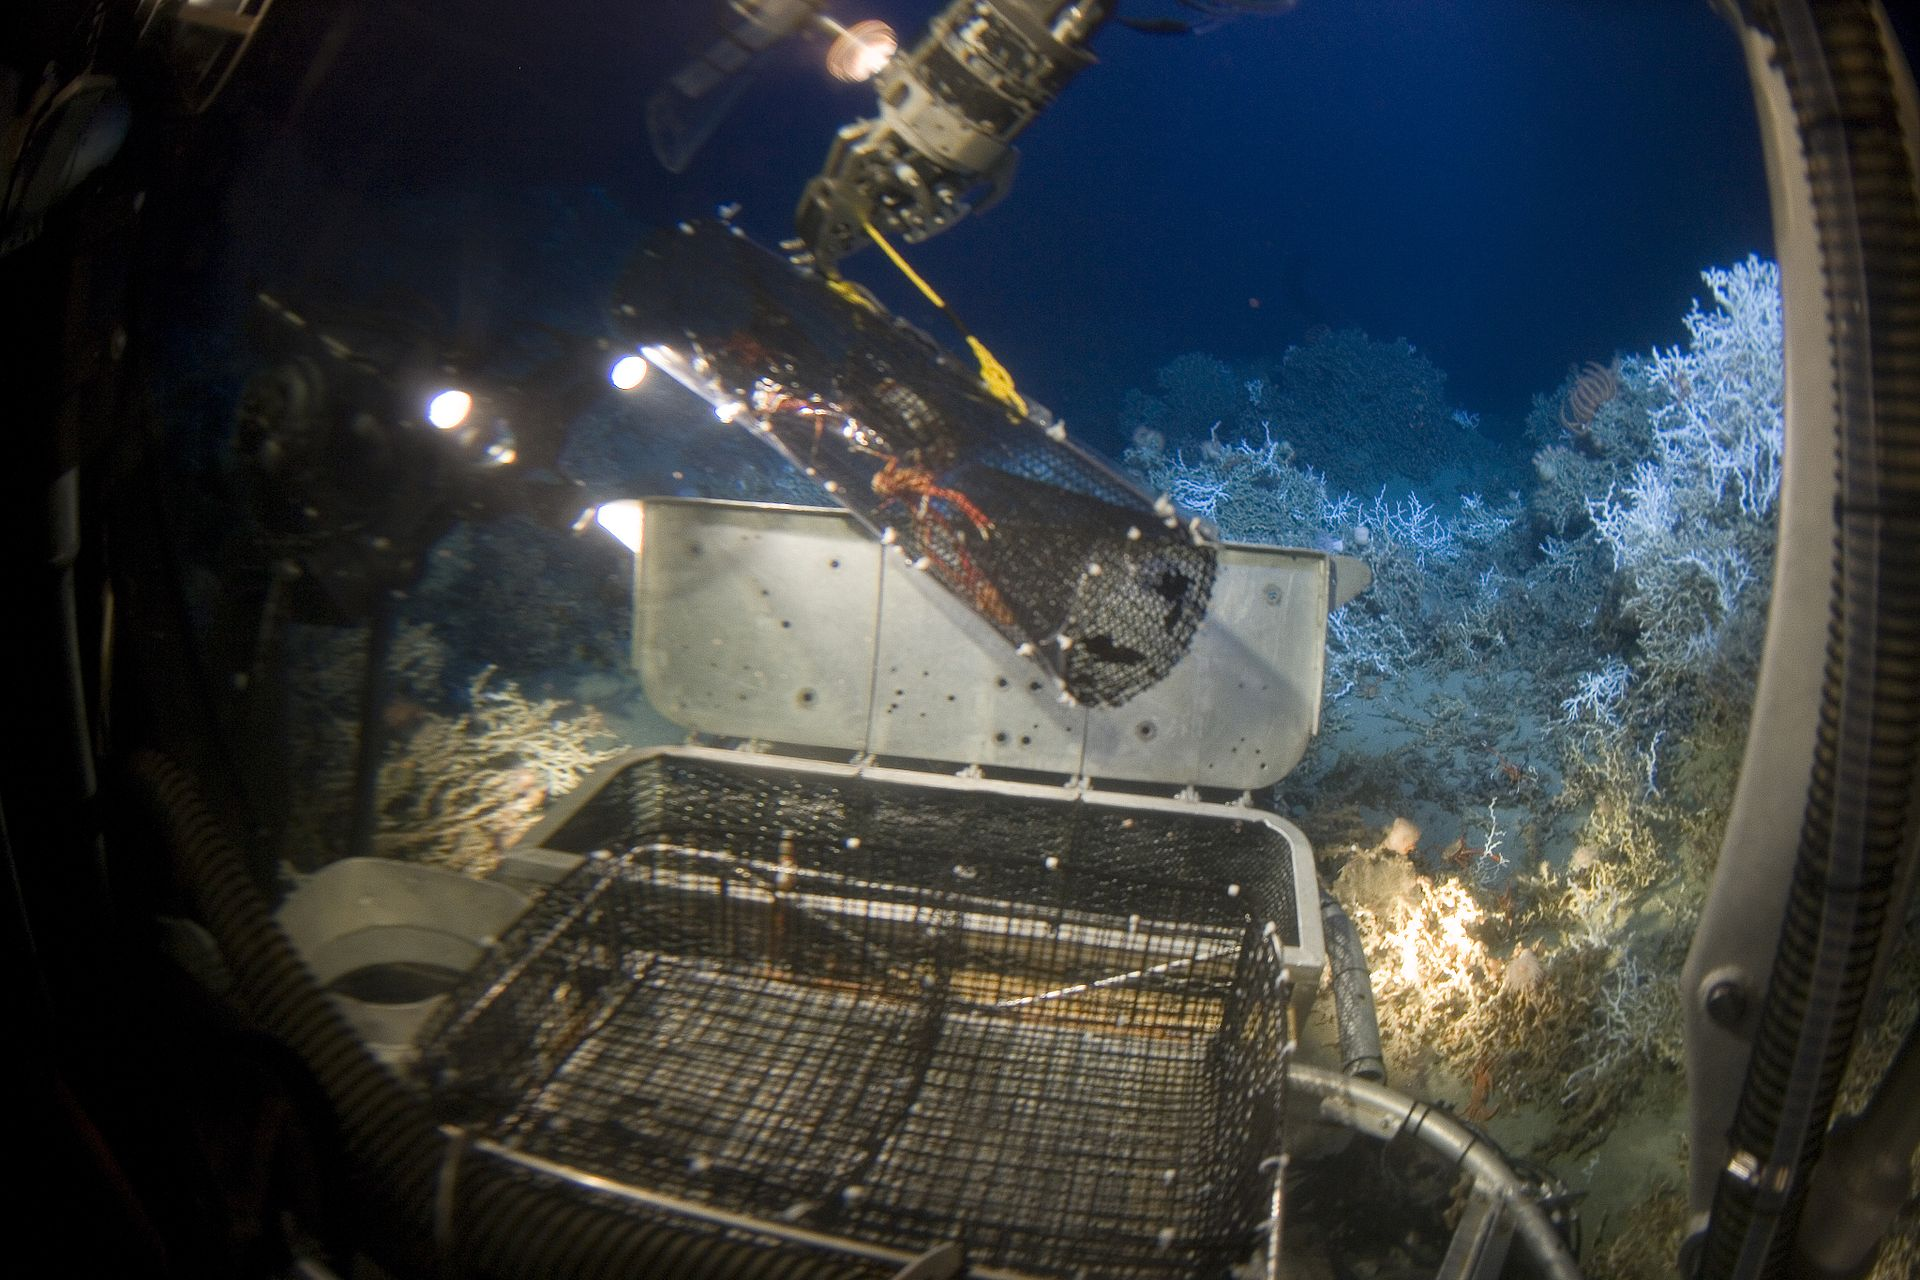 deep sea mining Biodiversity losses from deep-sea mining are unavoidable and possibly irrevocable, an international team of scientists, economists and lawyers argue they say the international seabed authority.